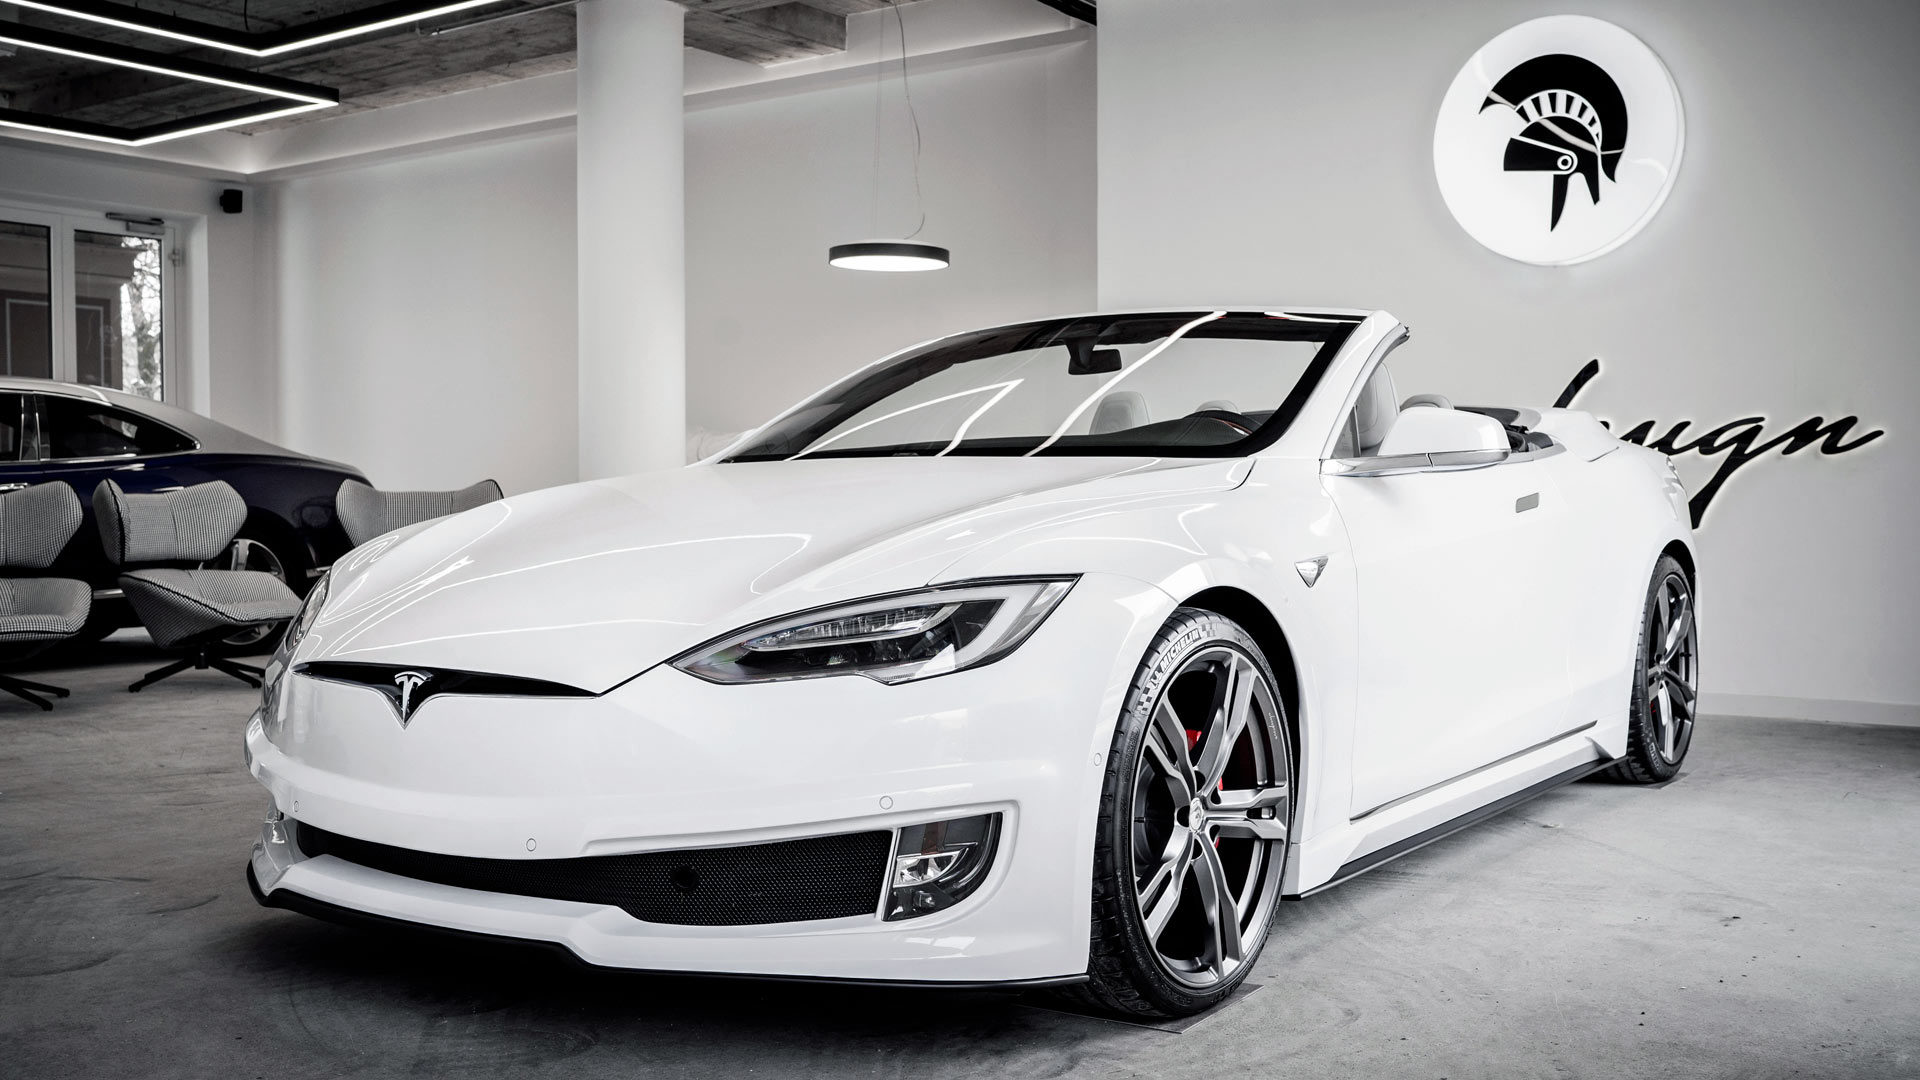 Ares Design creates one-off Tesla Model S convertible